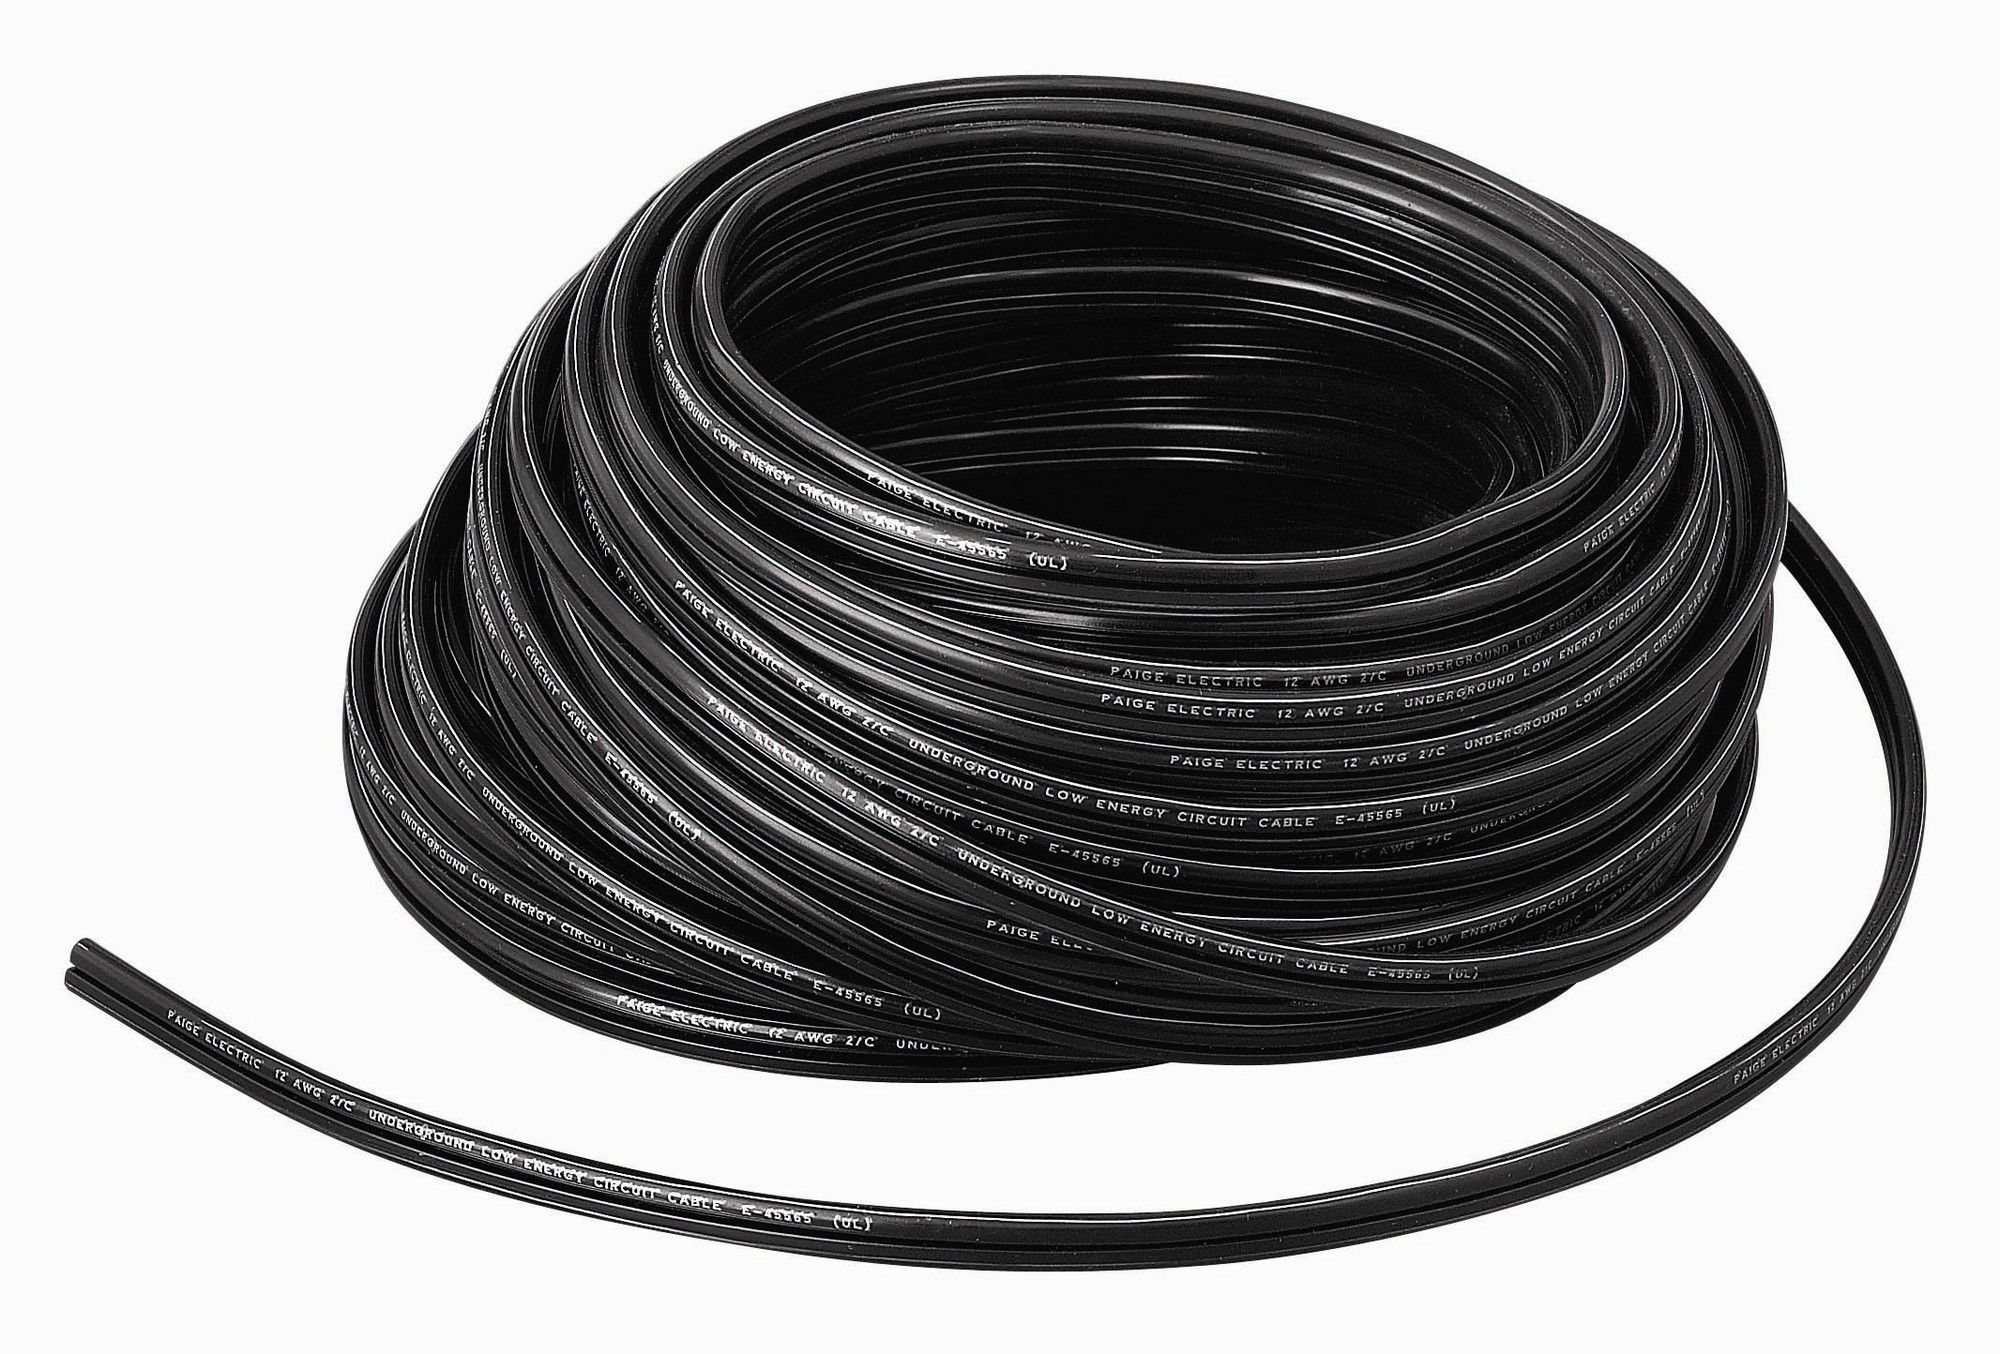 hight resolution of wire 12 gauge 100 feet wire spool electrical supplies outdoor lighting landscape lighting